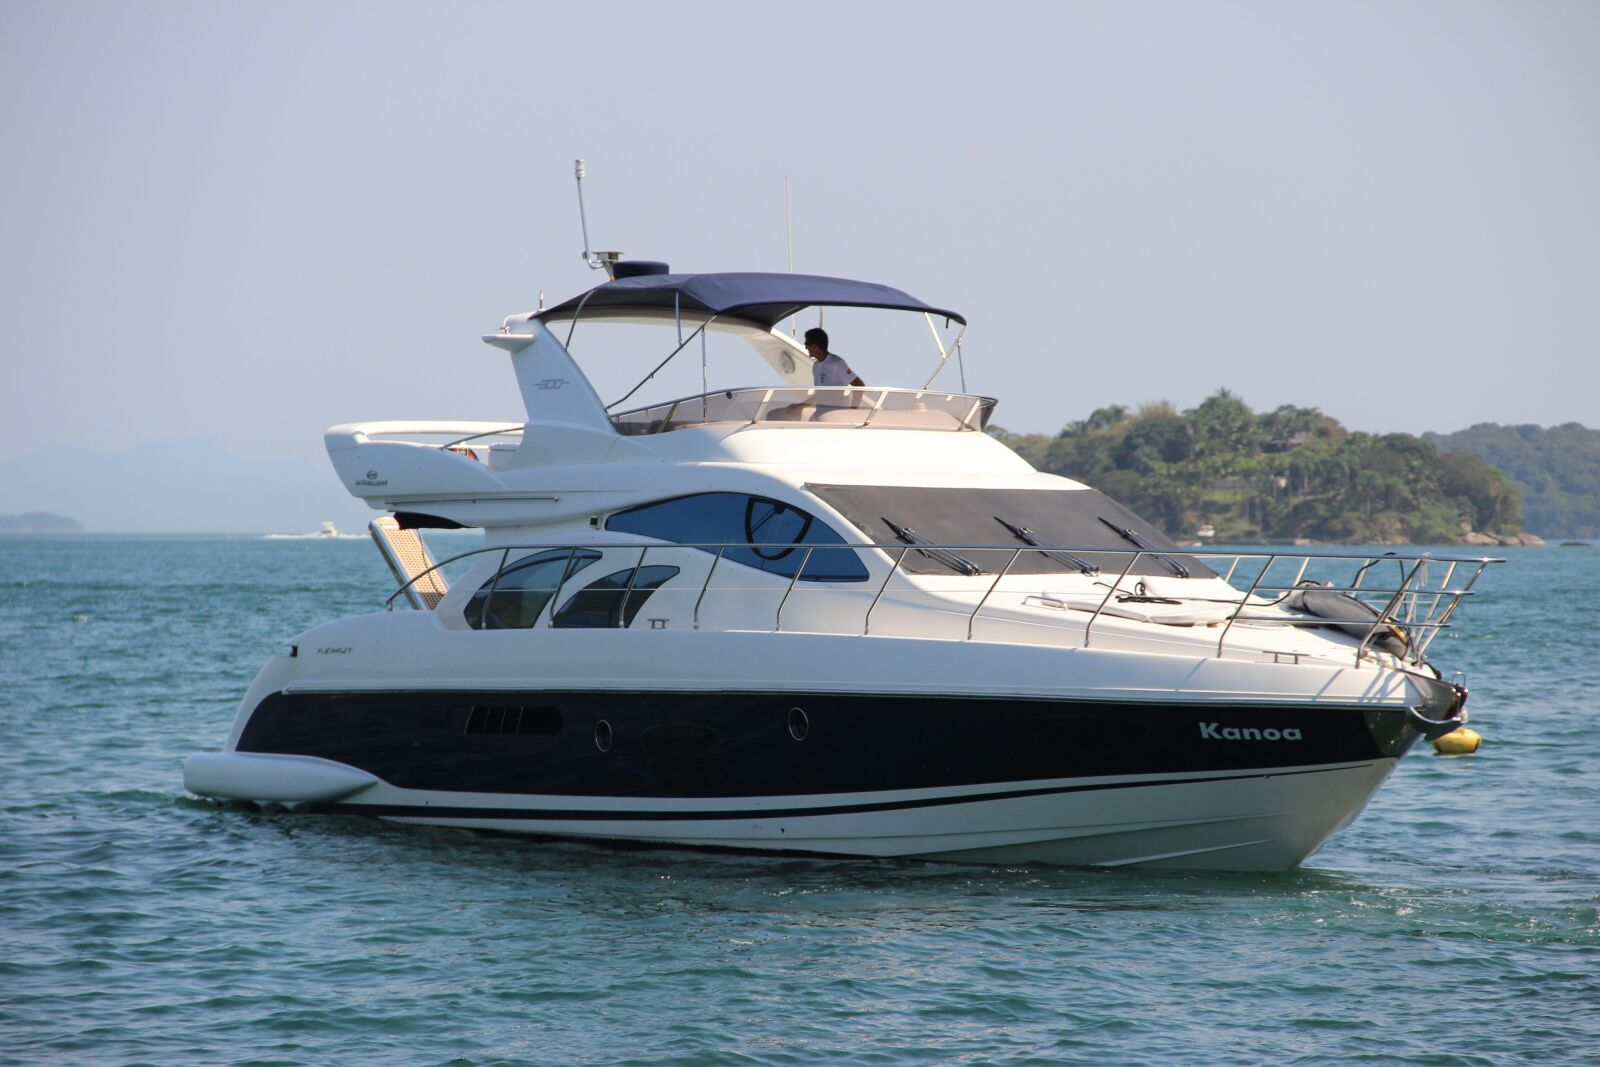 """Canon EOS 600D (Rebel EOS T3i / EOS Kiss X5) sample photo. """"Yacht, luxury, vessel"""" photography"""